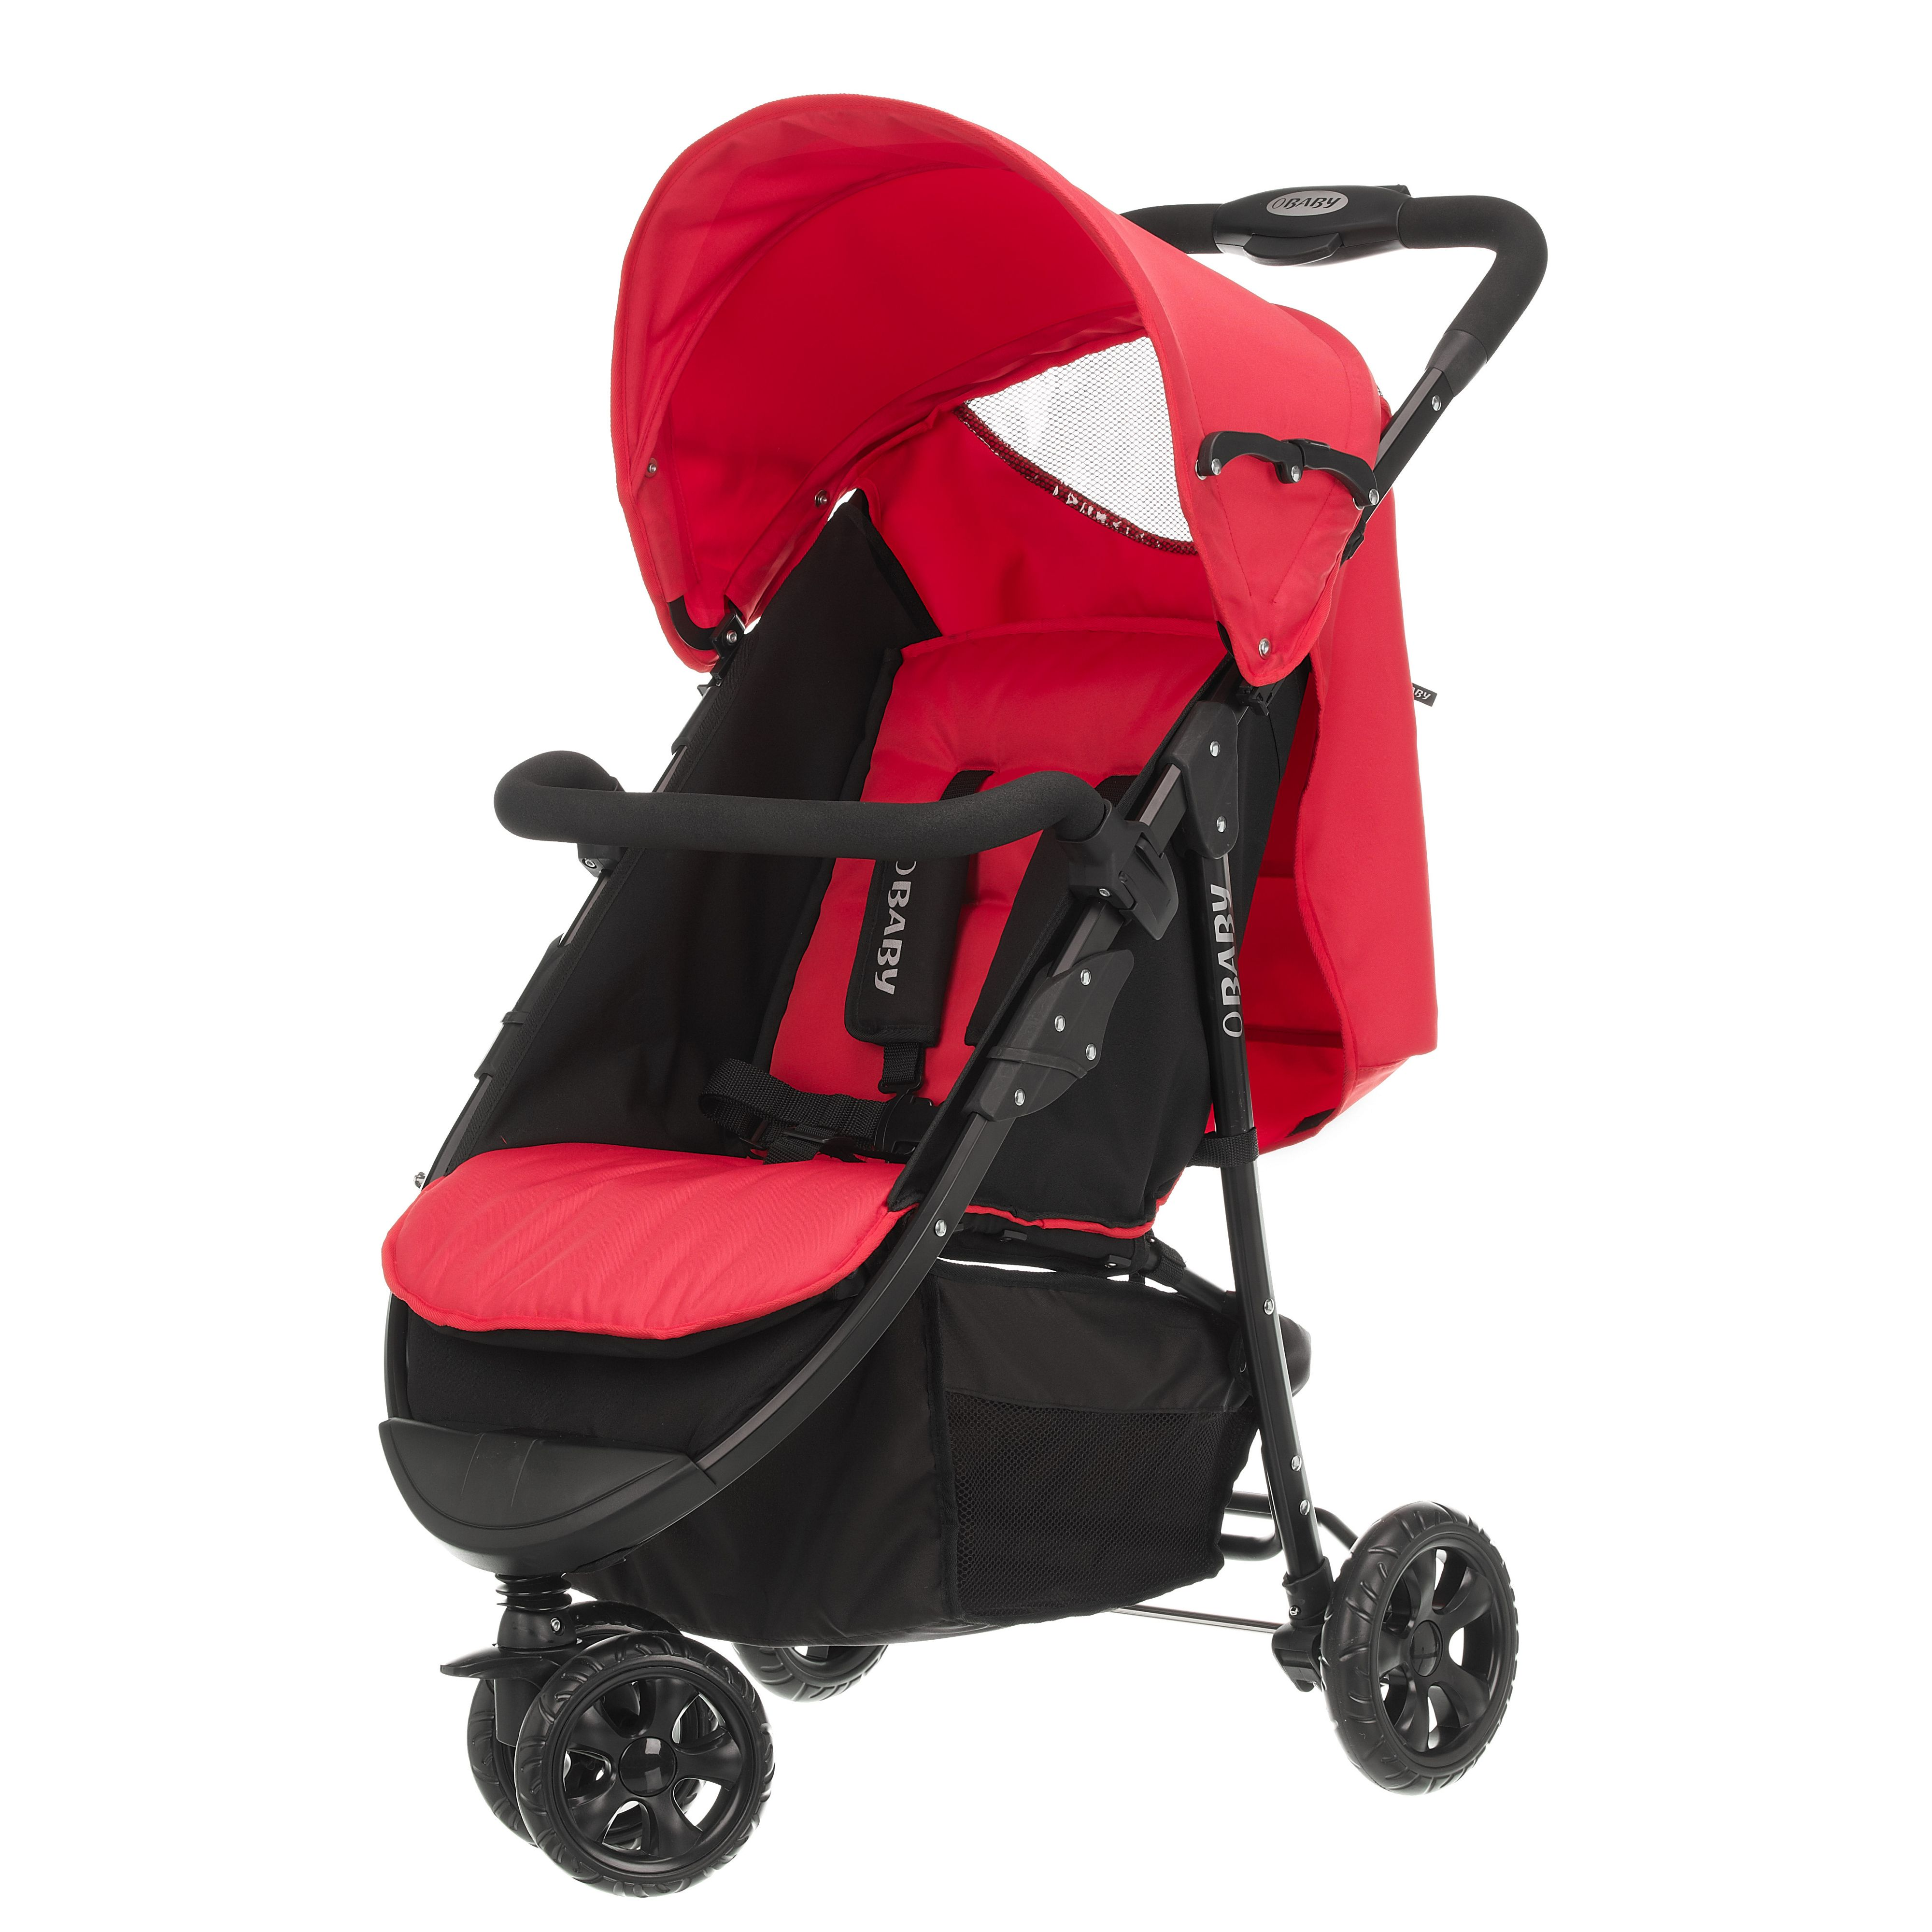 OBABY Tour 3 wheeler - black/red